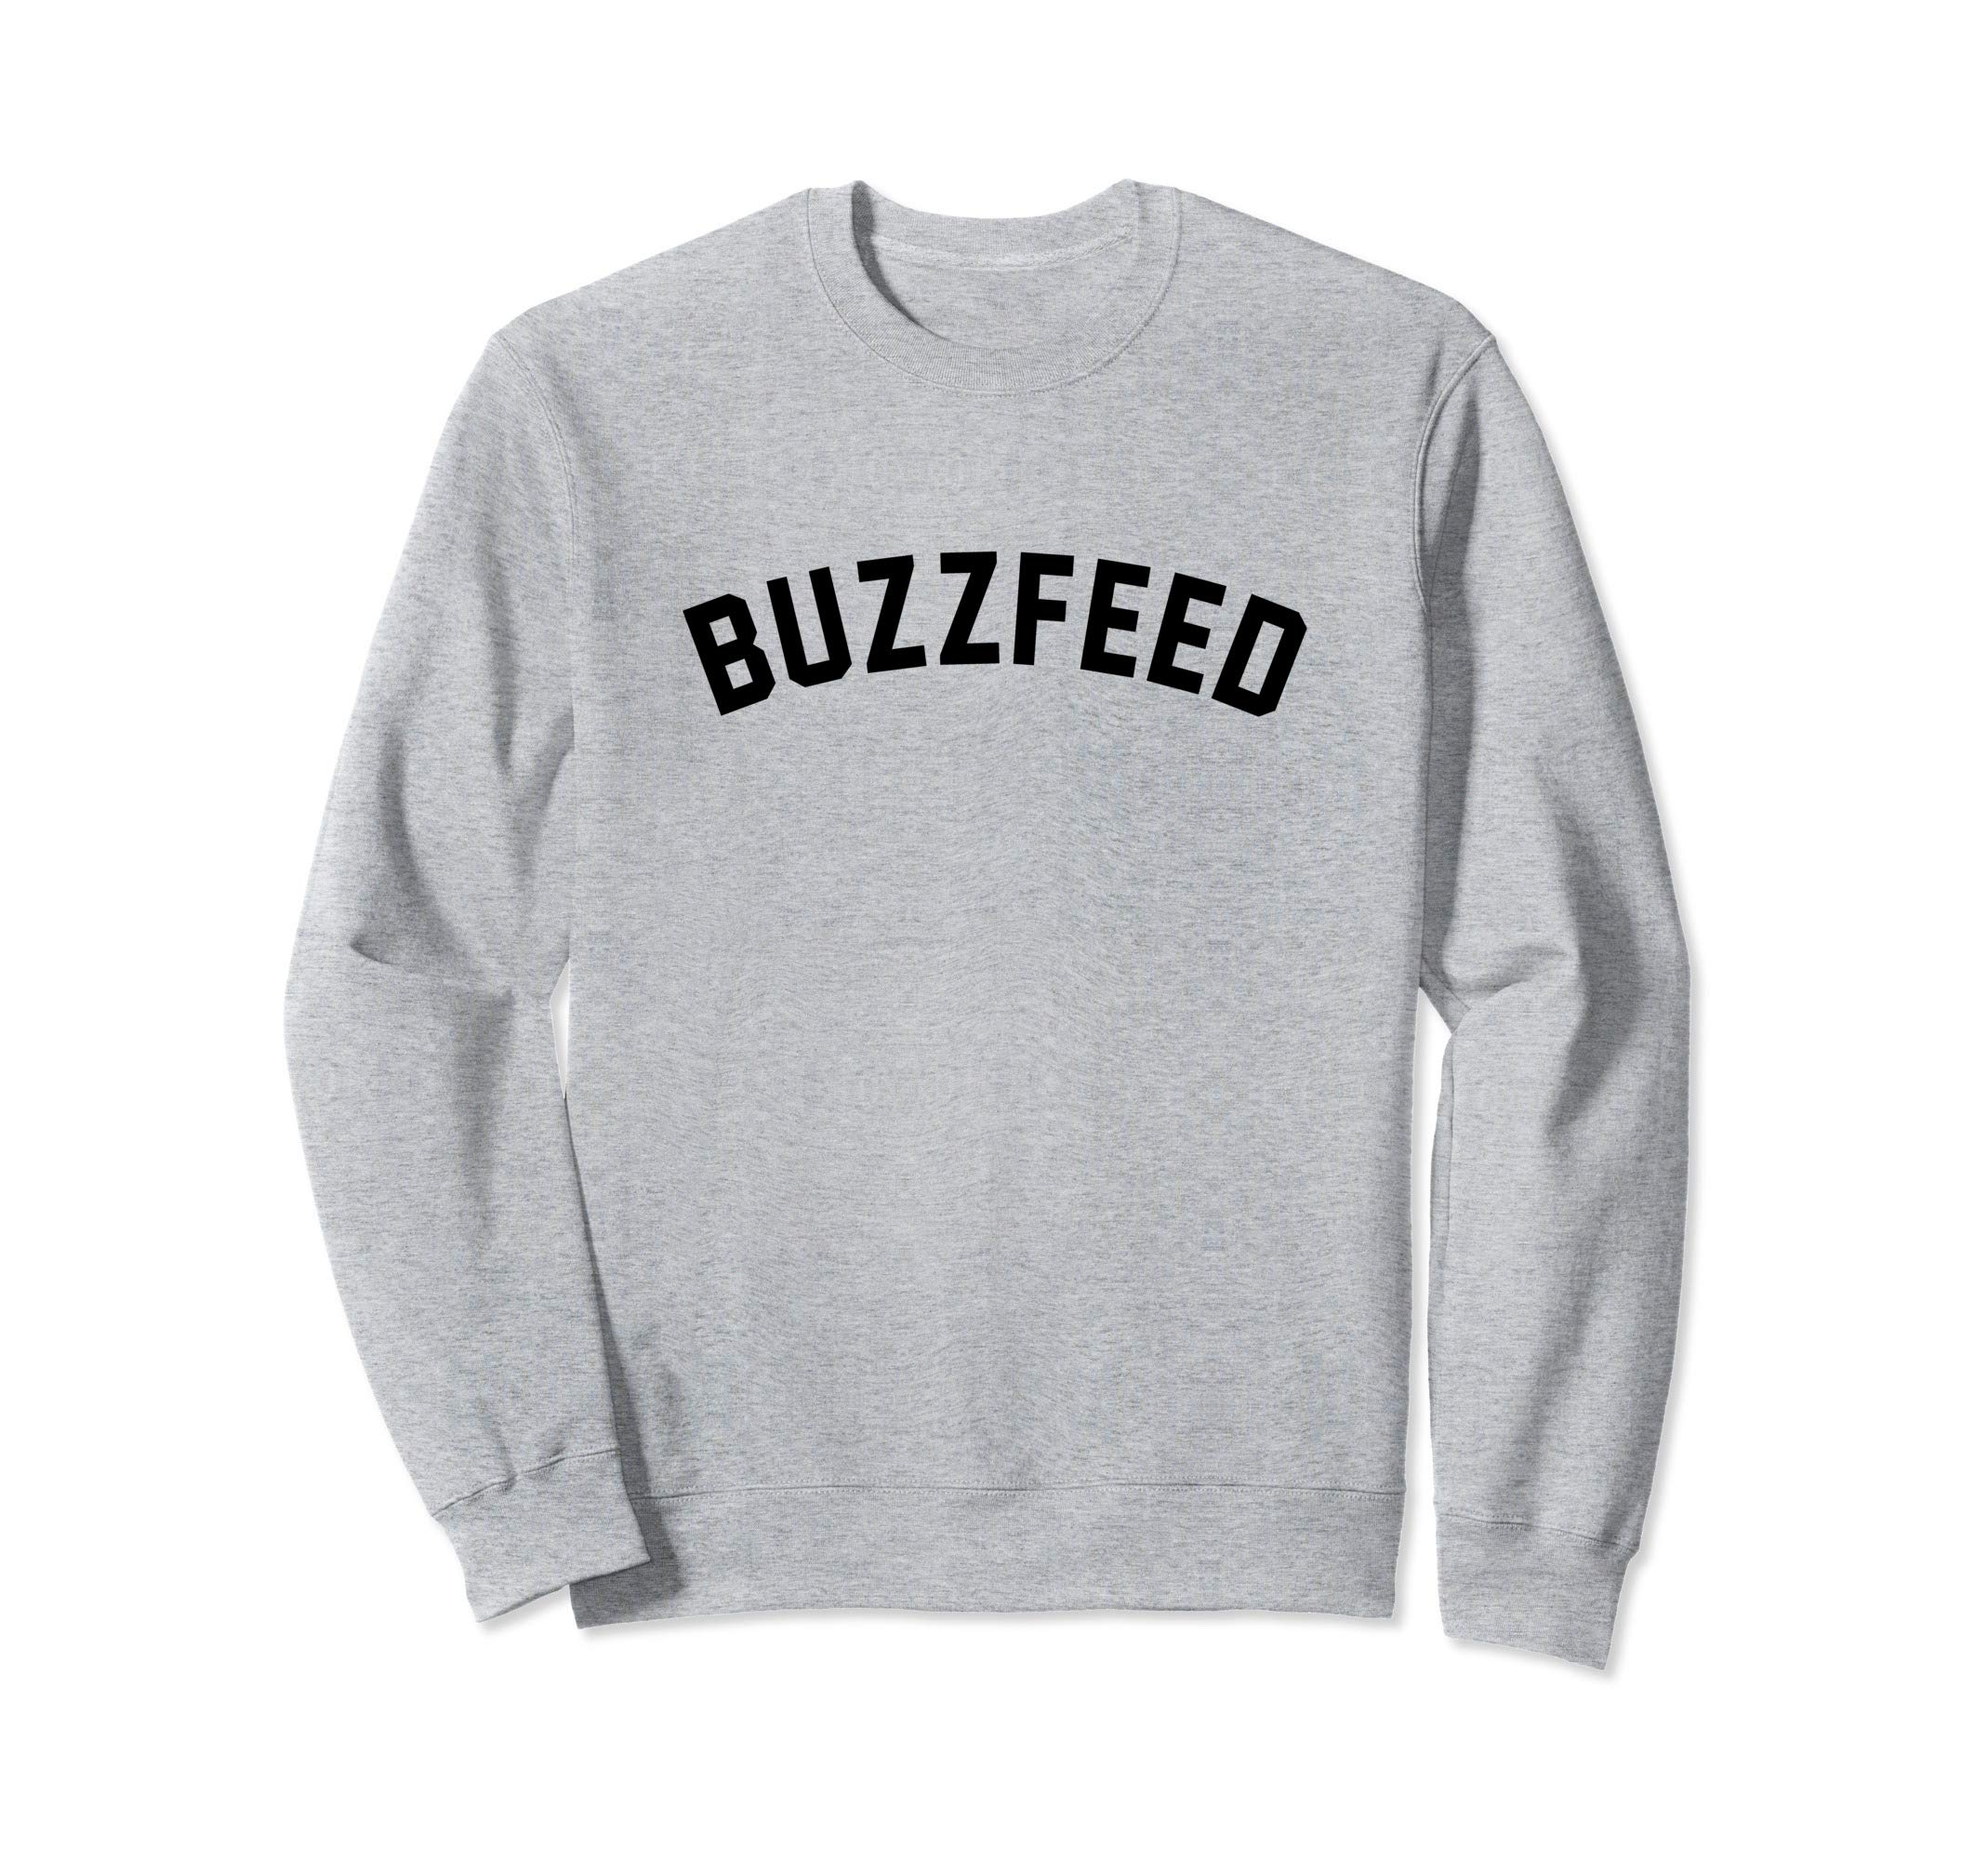 Amazon com: Shop Buzzfeed